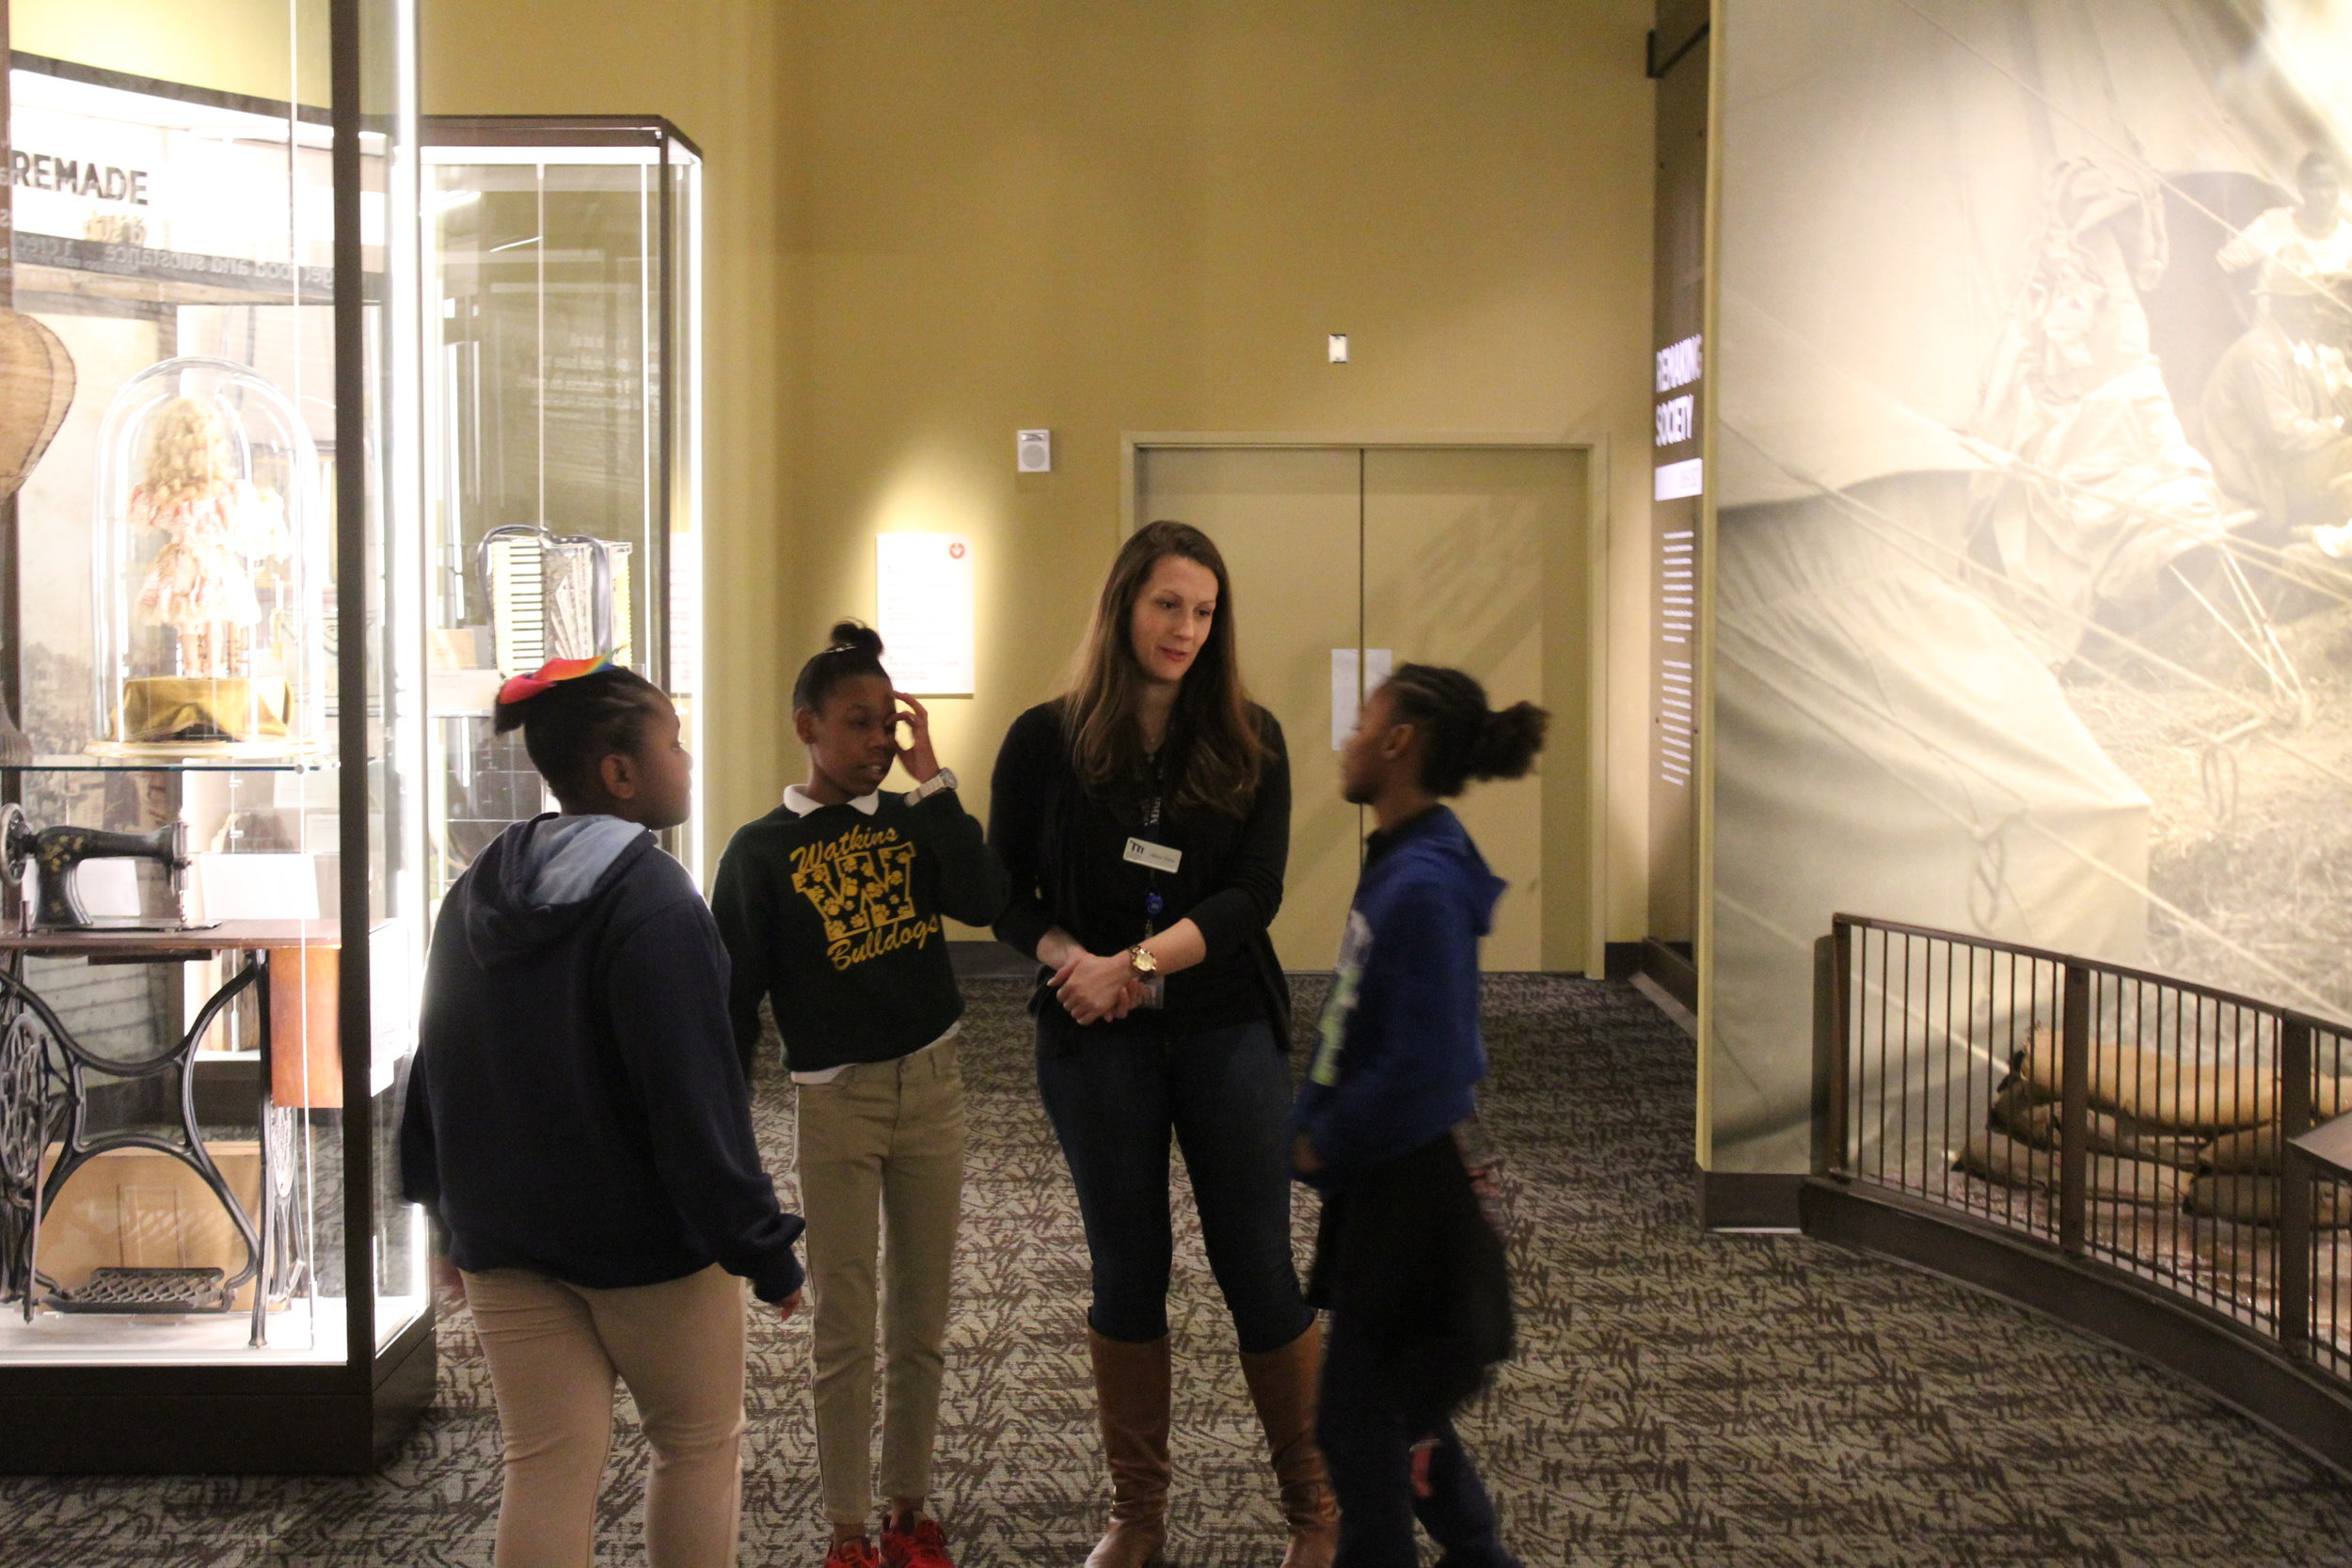 Allison engaging with students from Watkins Elementary School during a field trip.